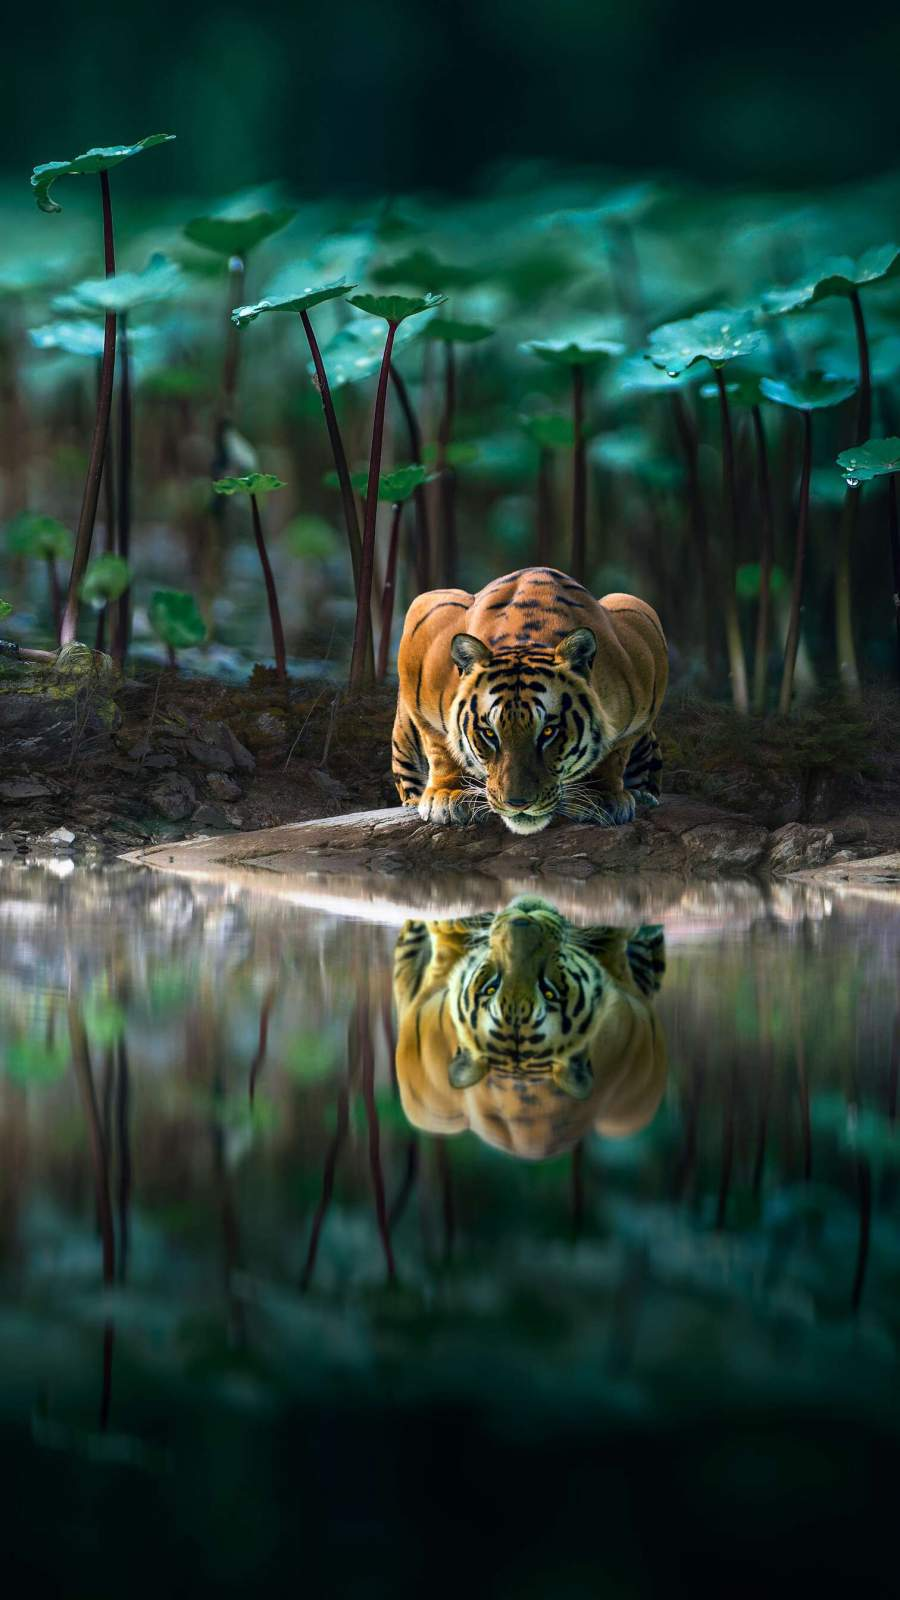 Tiger Reflection in Water iPhone Wallpaper